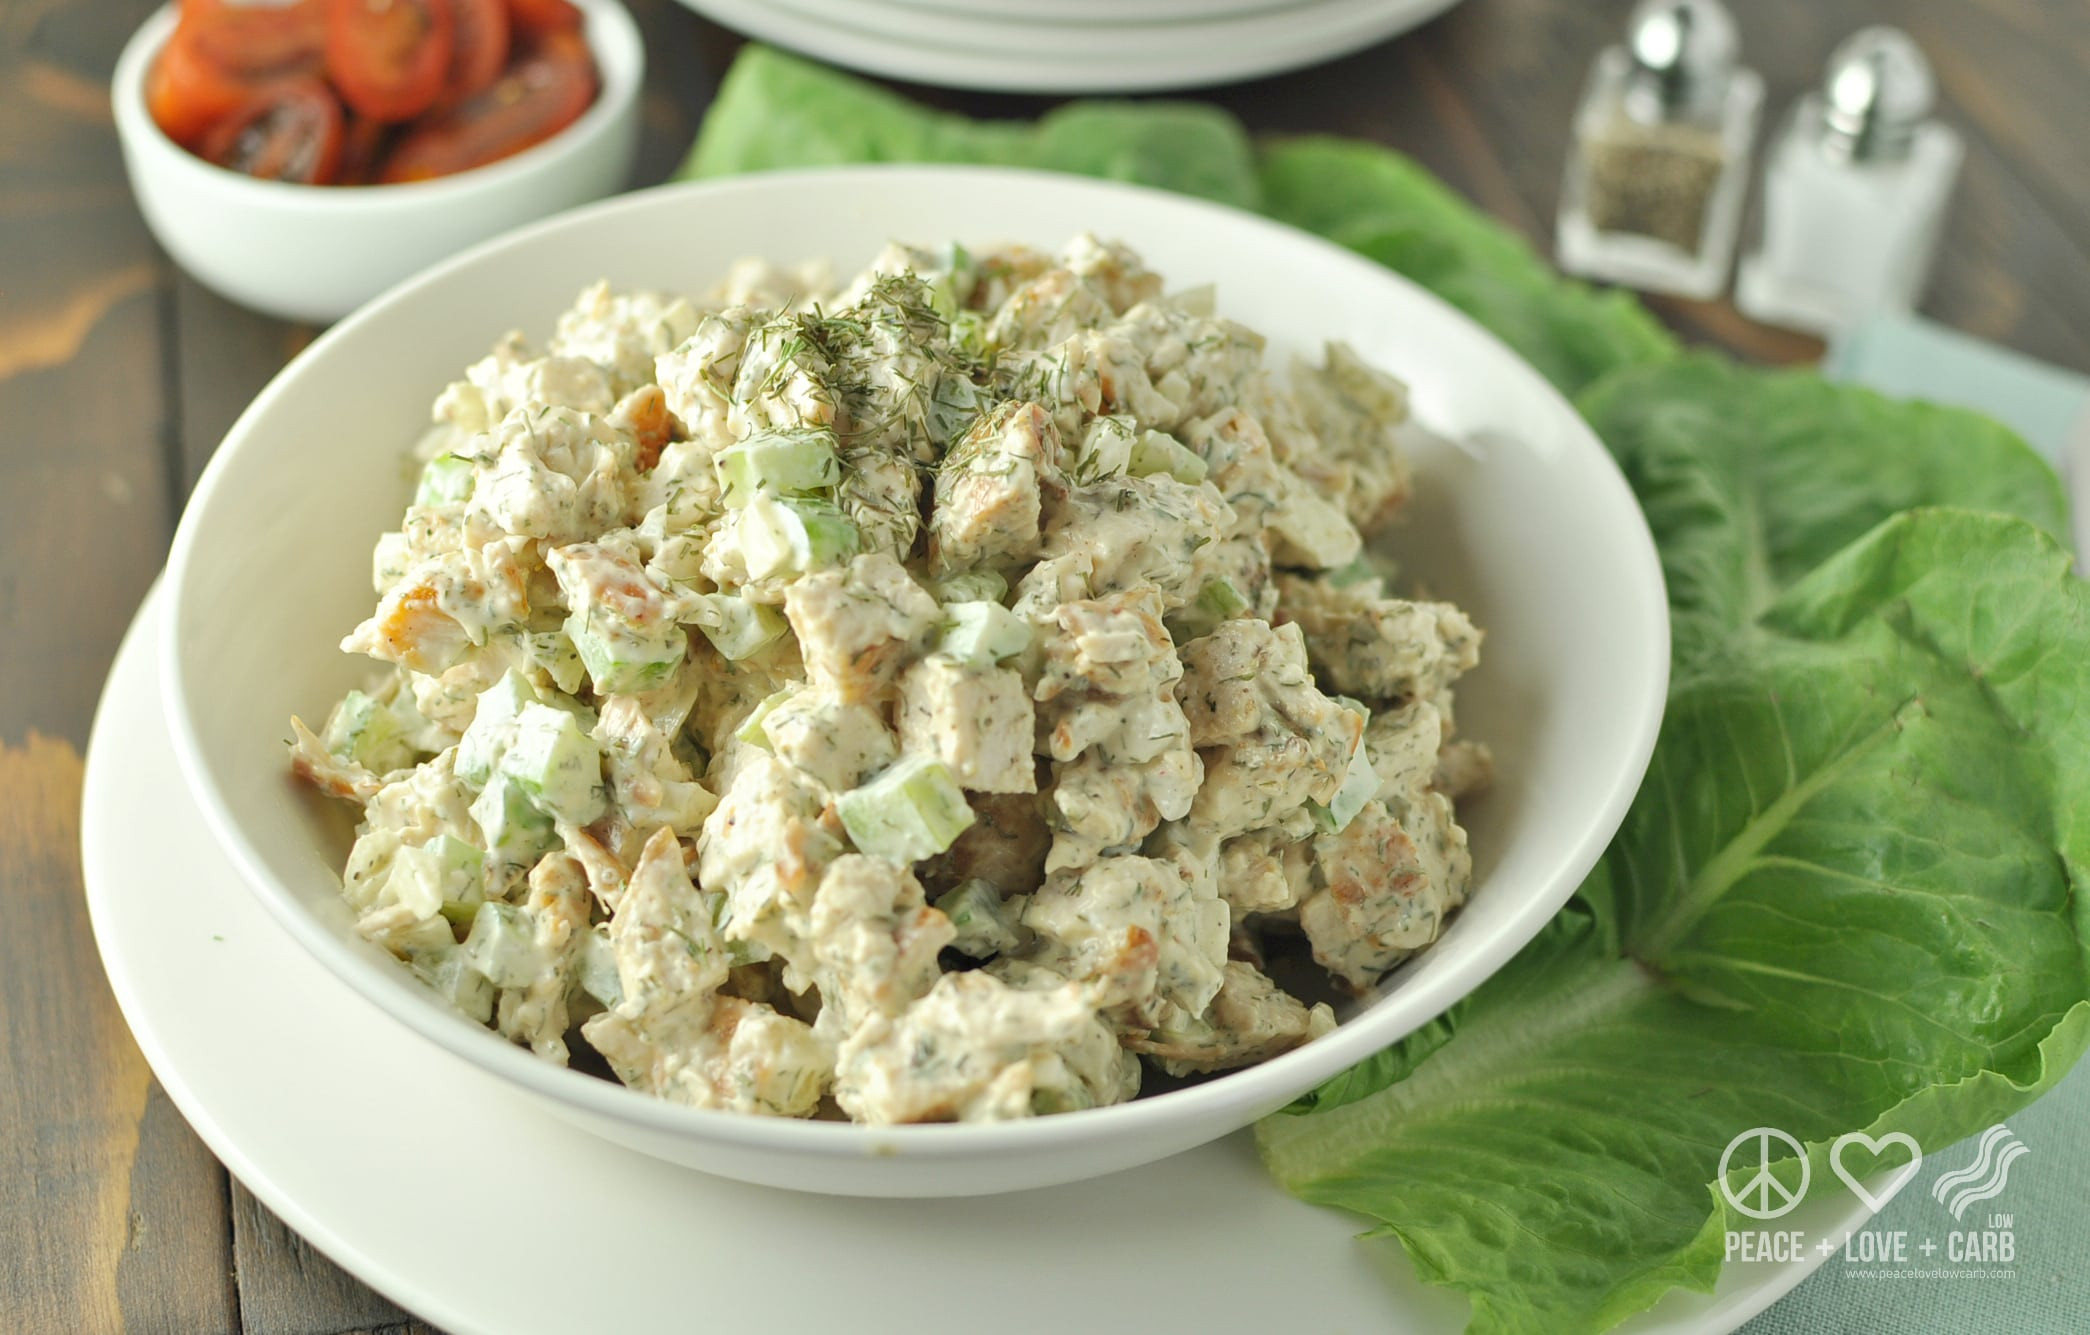 Carbs In Chicken Salad  Dill Chicken Salad Low Carb Paleo